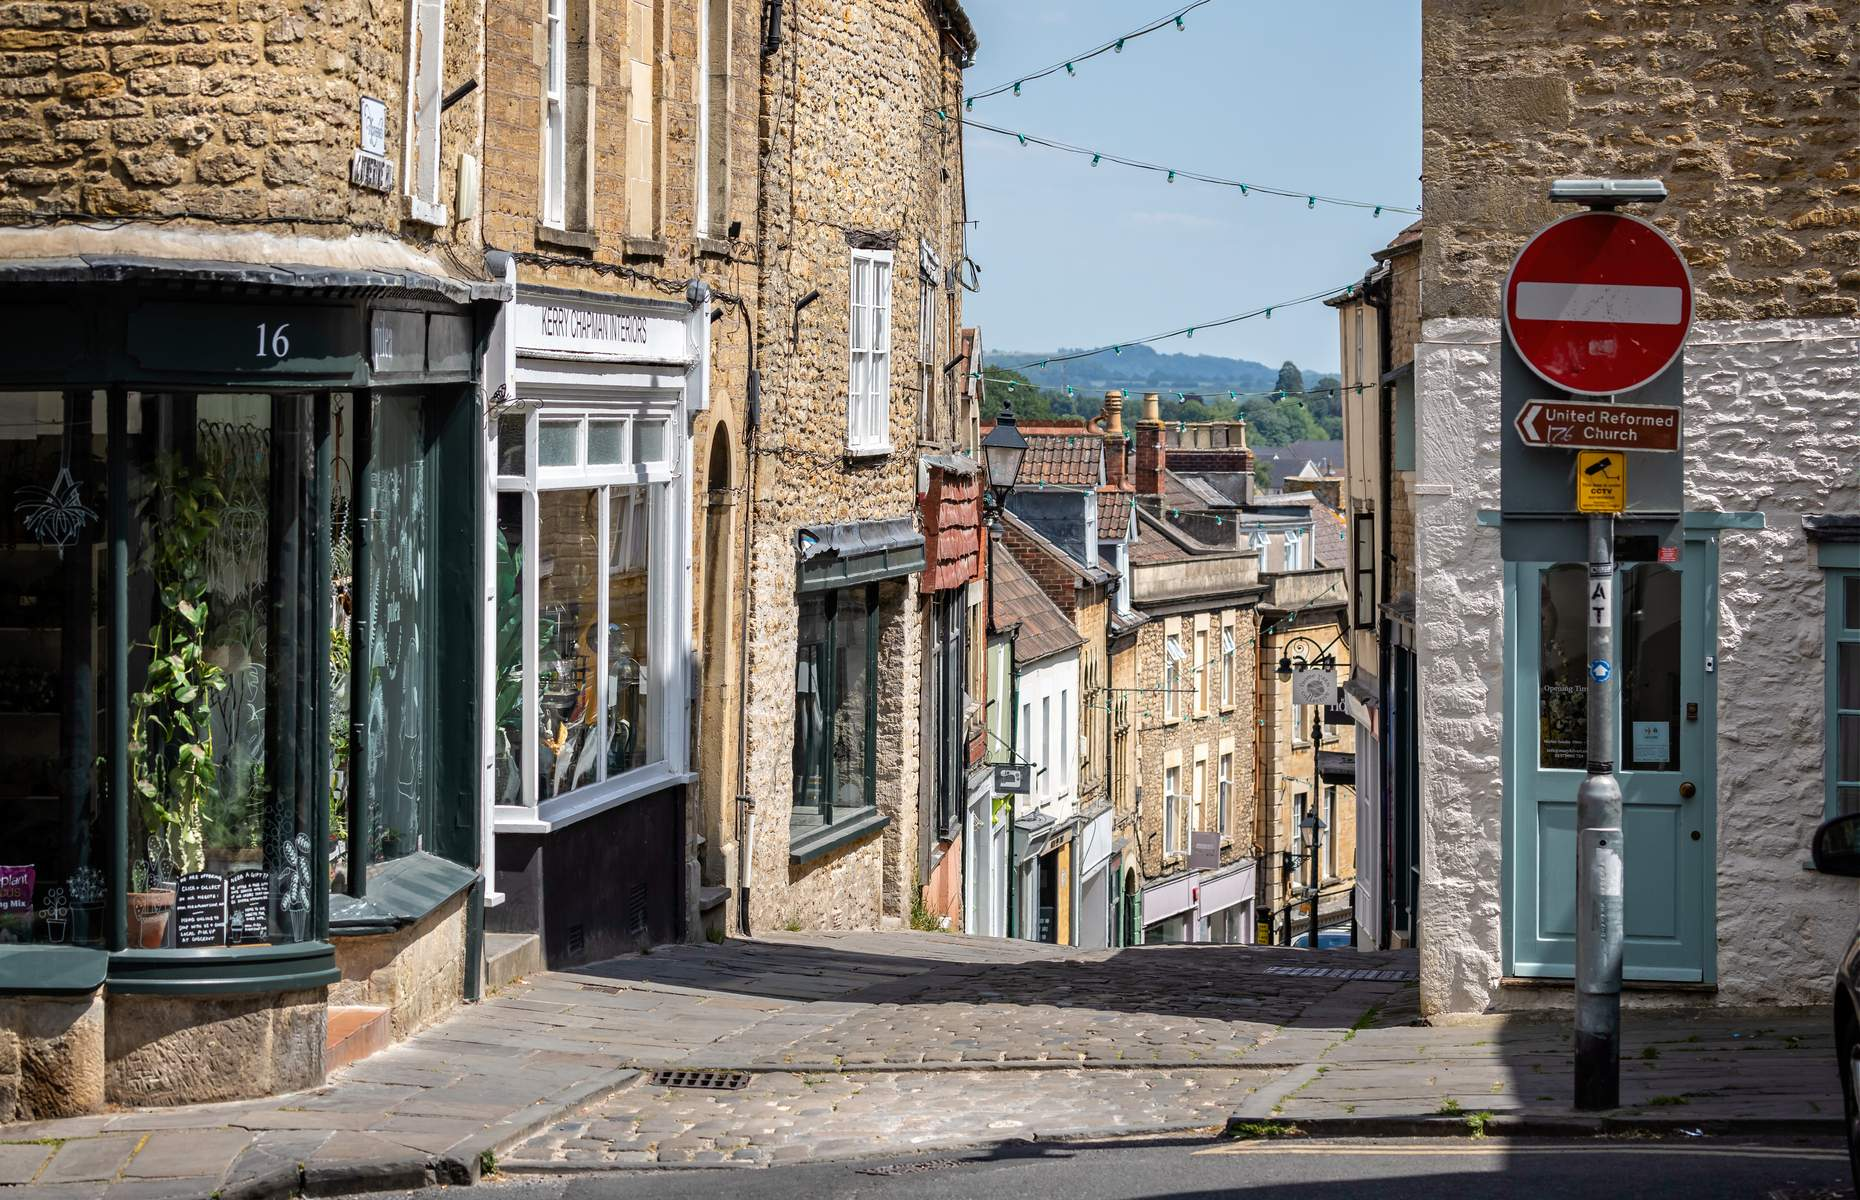 Catherine Hill in Frome (Image: Nigel Jarvis/Shutterstock)